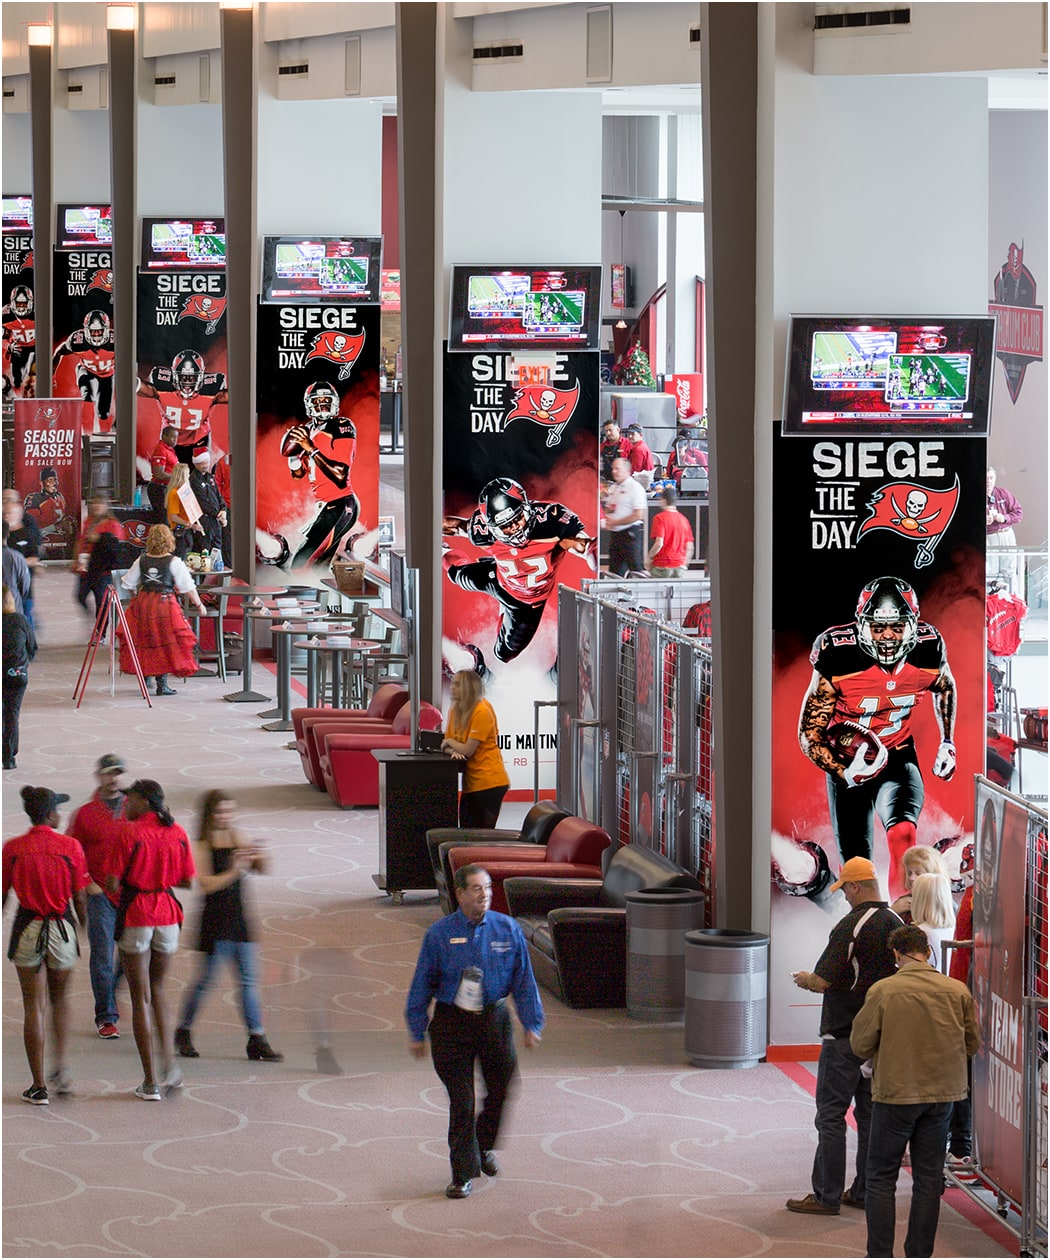 Photo of Siege the Day posters along concourse columns in club level of Raymond James Stadium